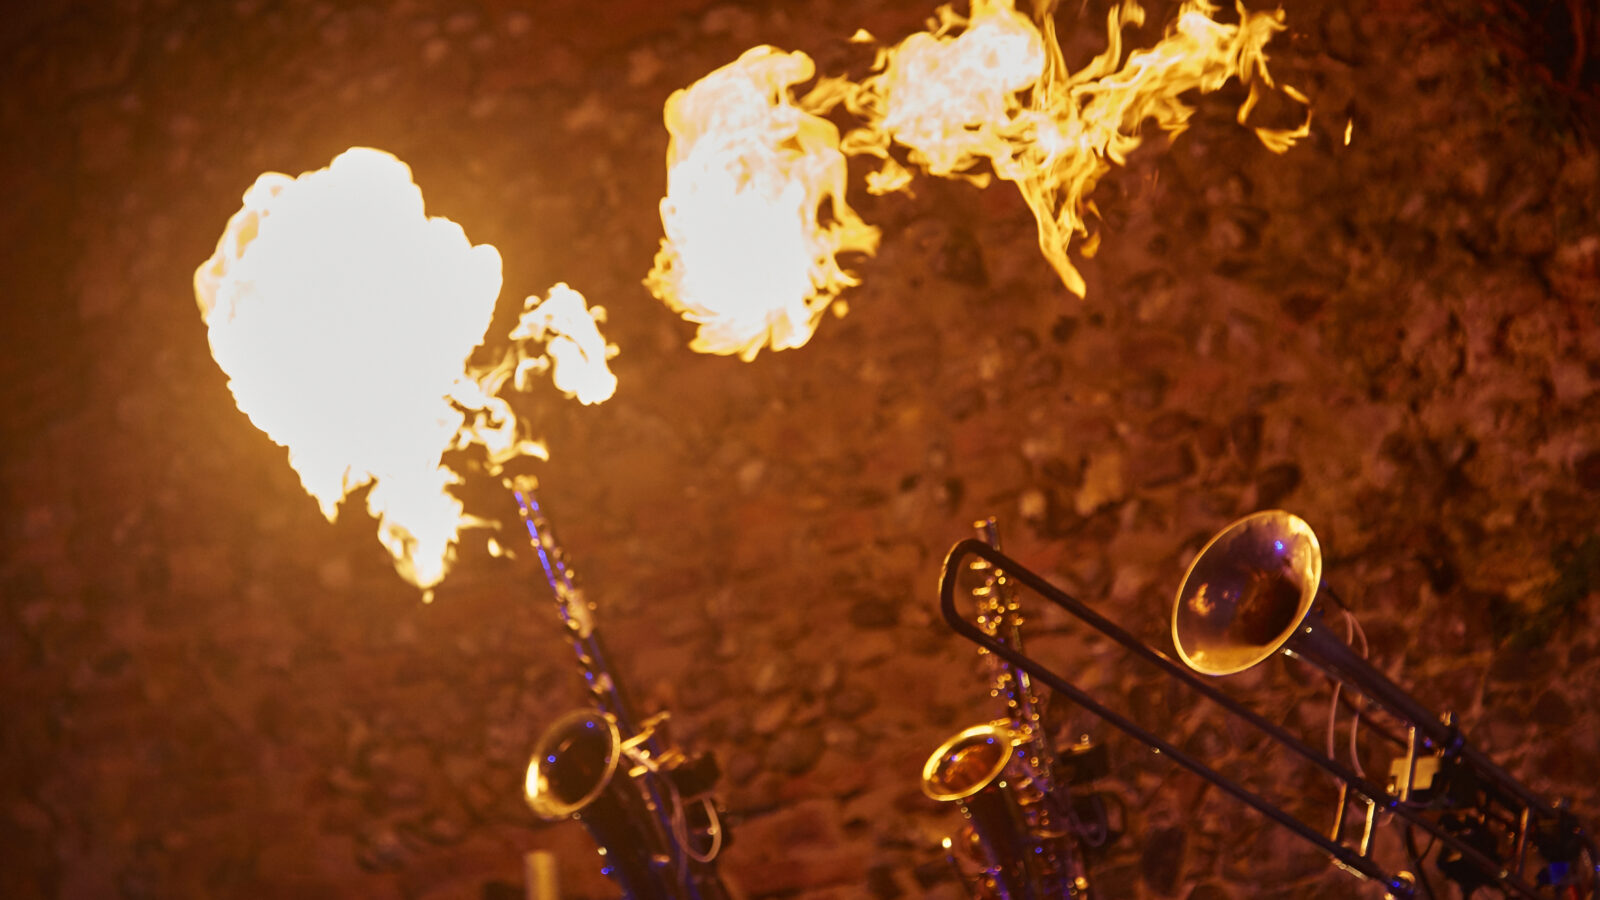 Trumpets blowing fire in musical timings